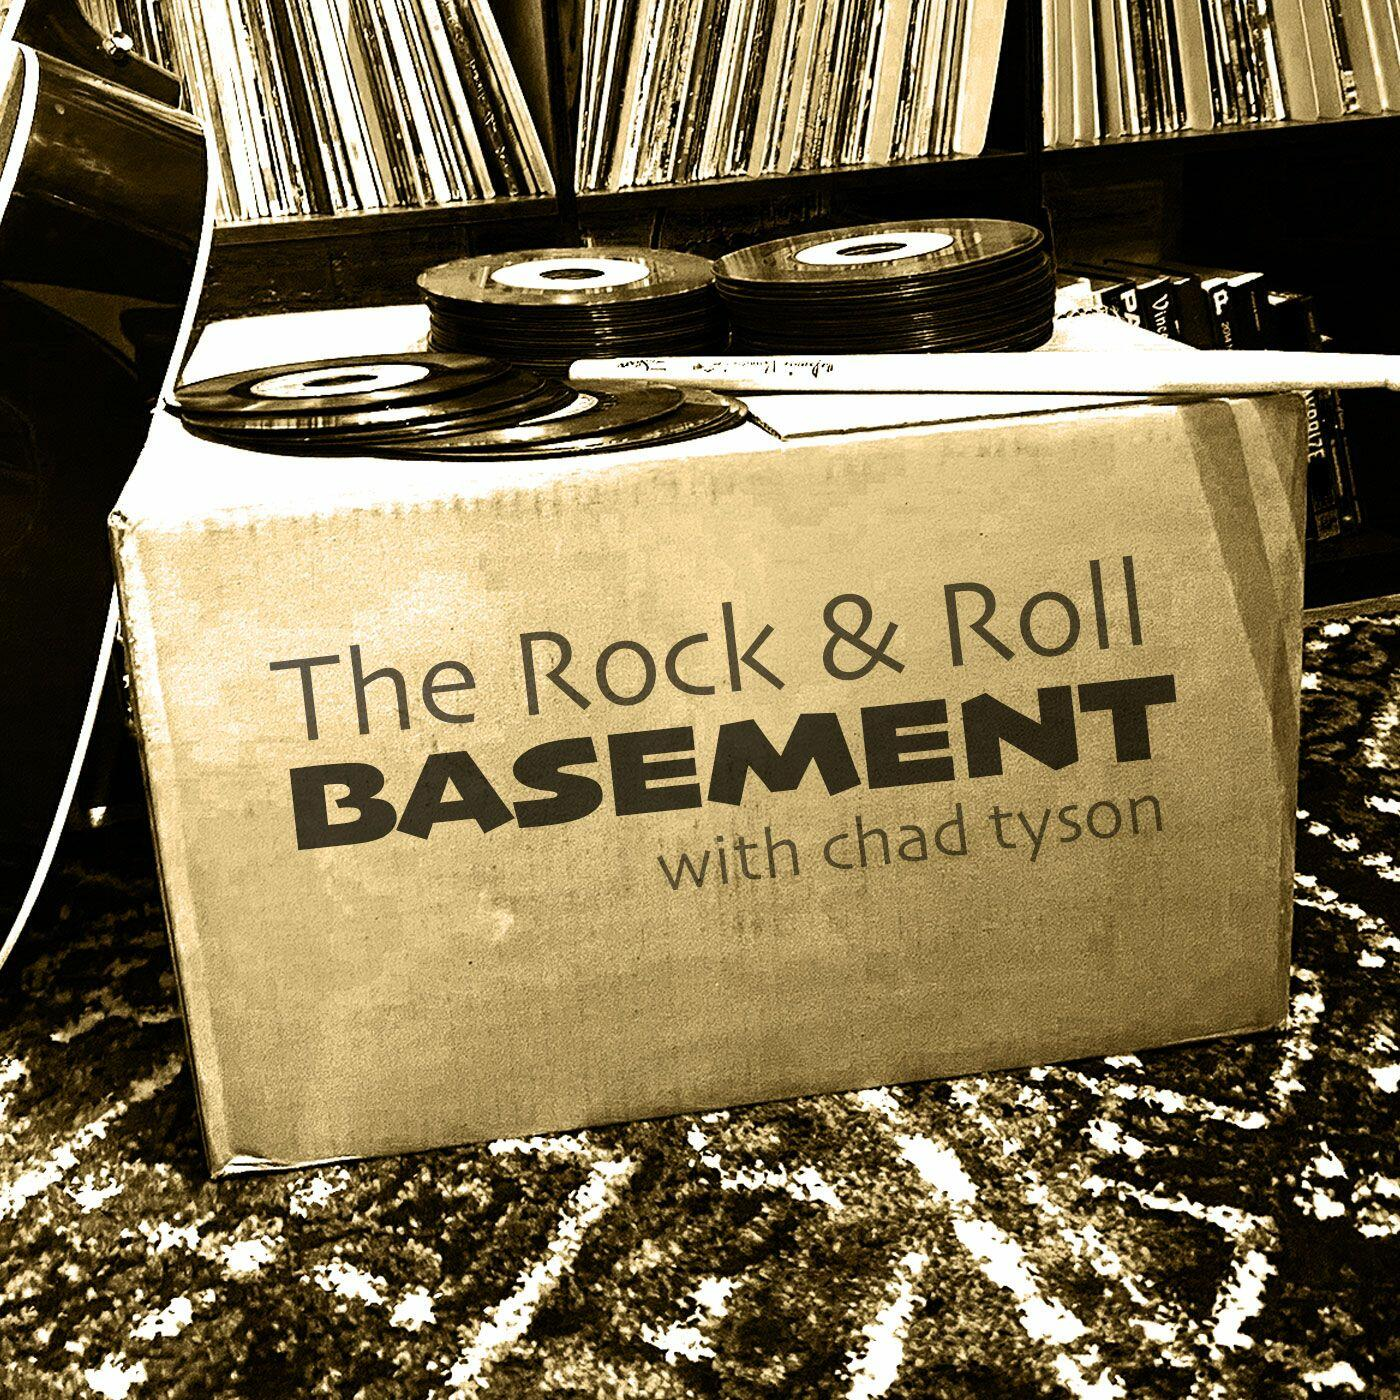 The Rock & Roll Basement with Chad Tyson